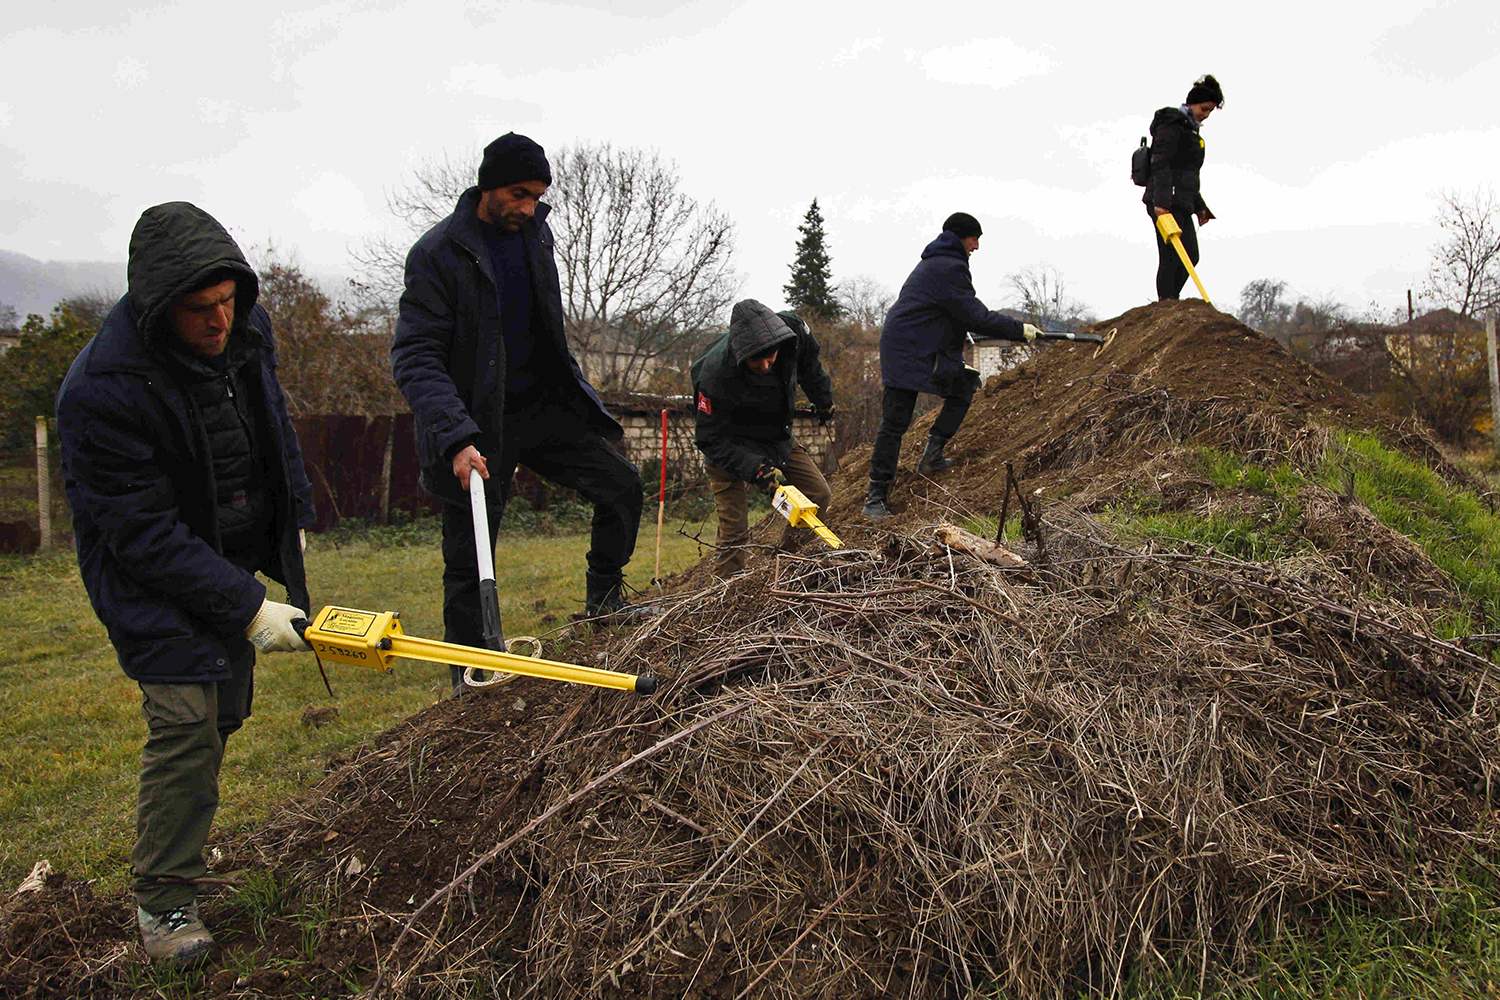 Deminers working for the HALO Trust sweep for unexploded munitions scattered throughout the village of Aygestan in Nagorno Karabakh on Dec. 3, 2020.